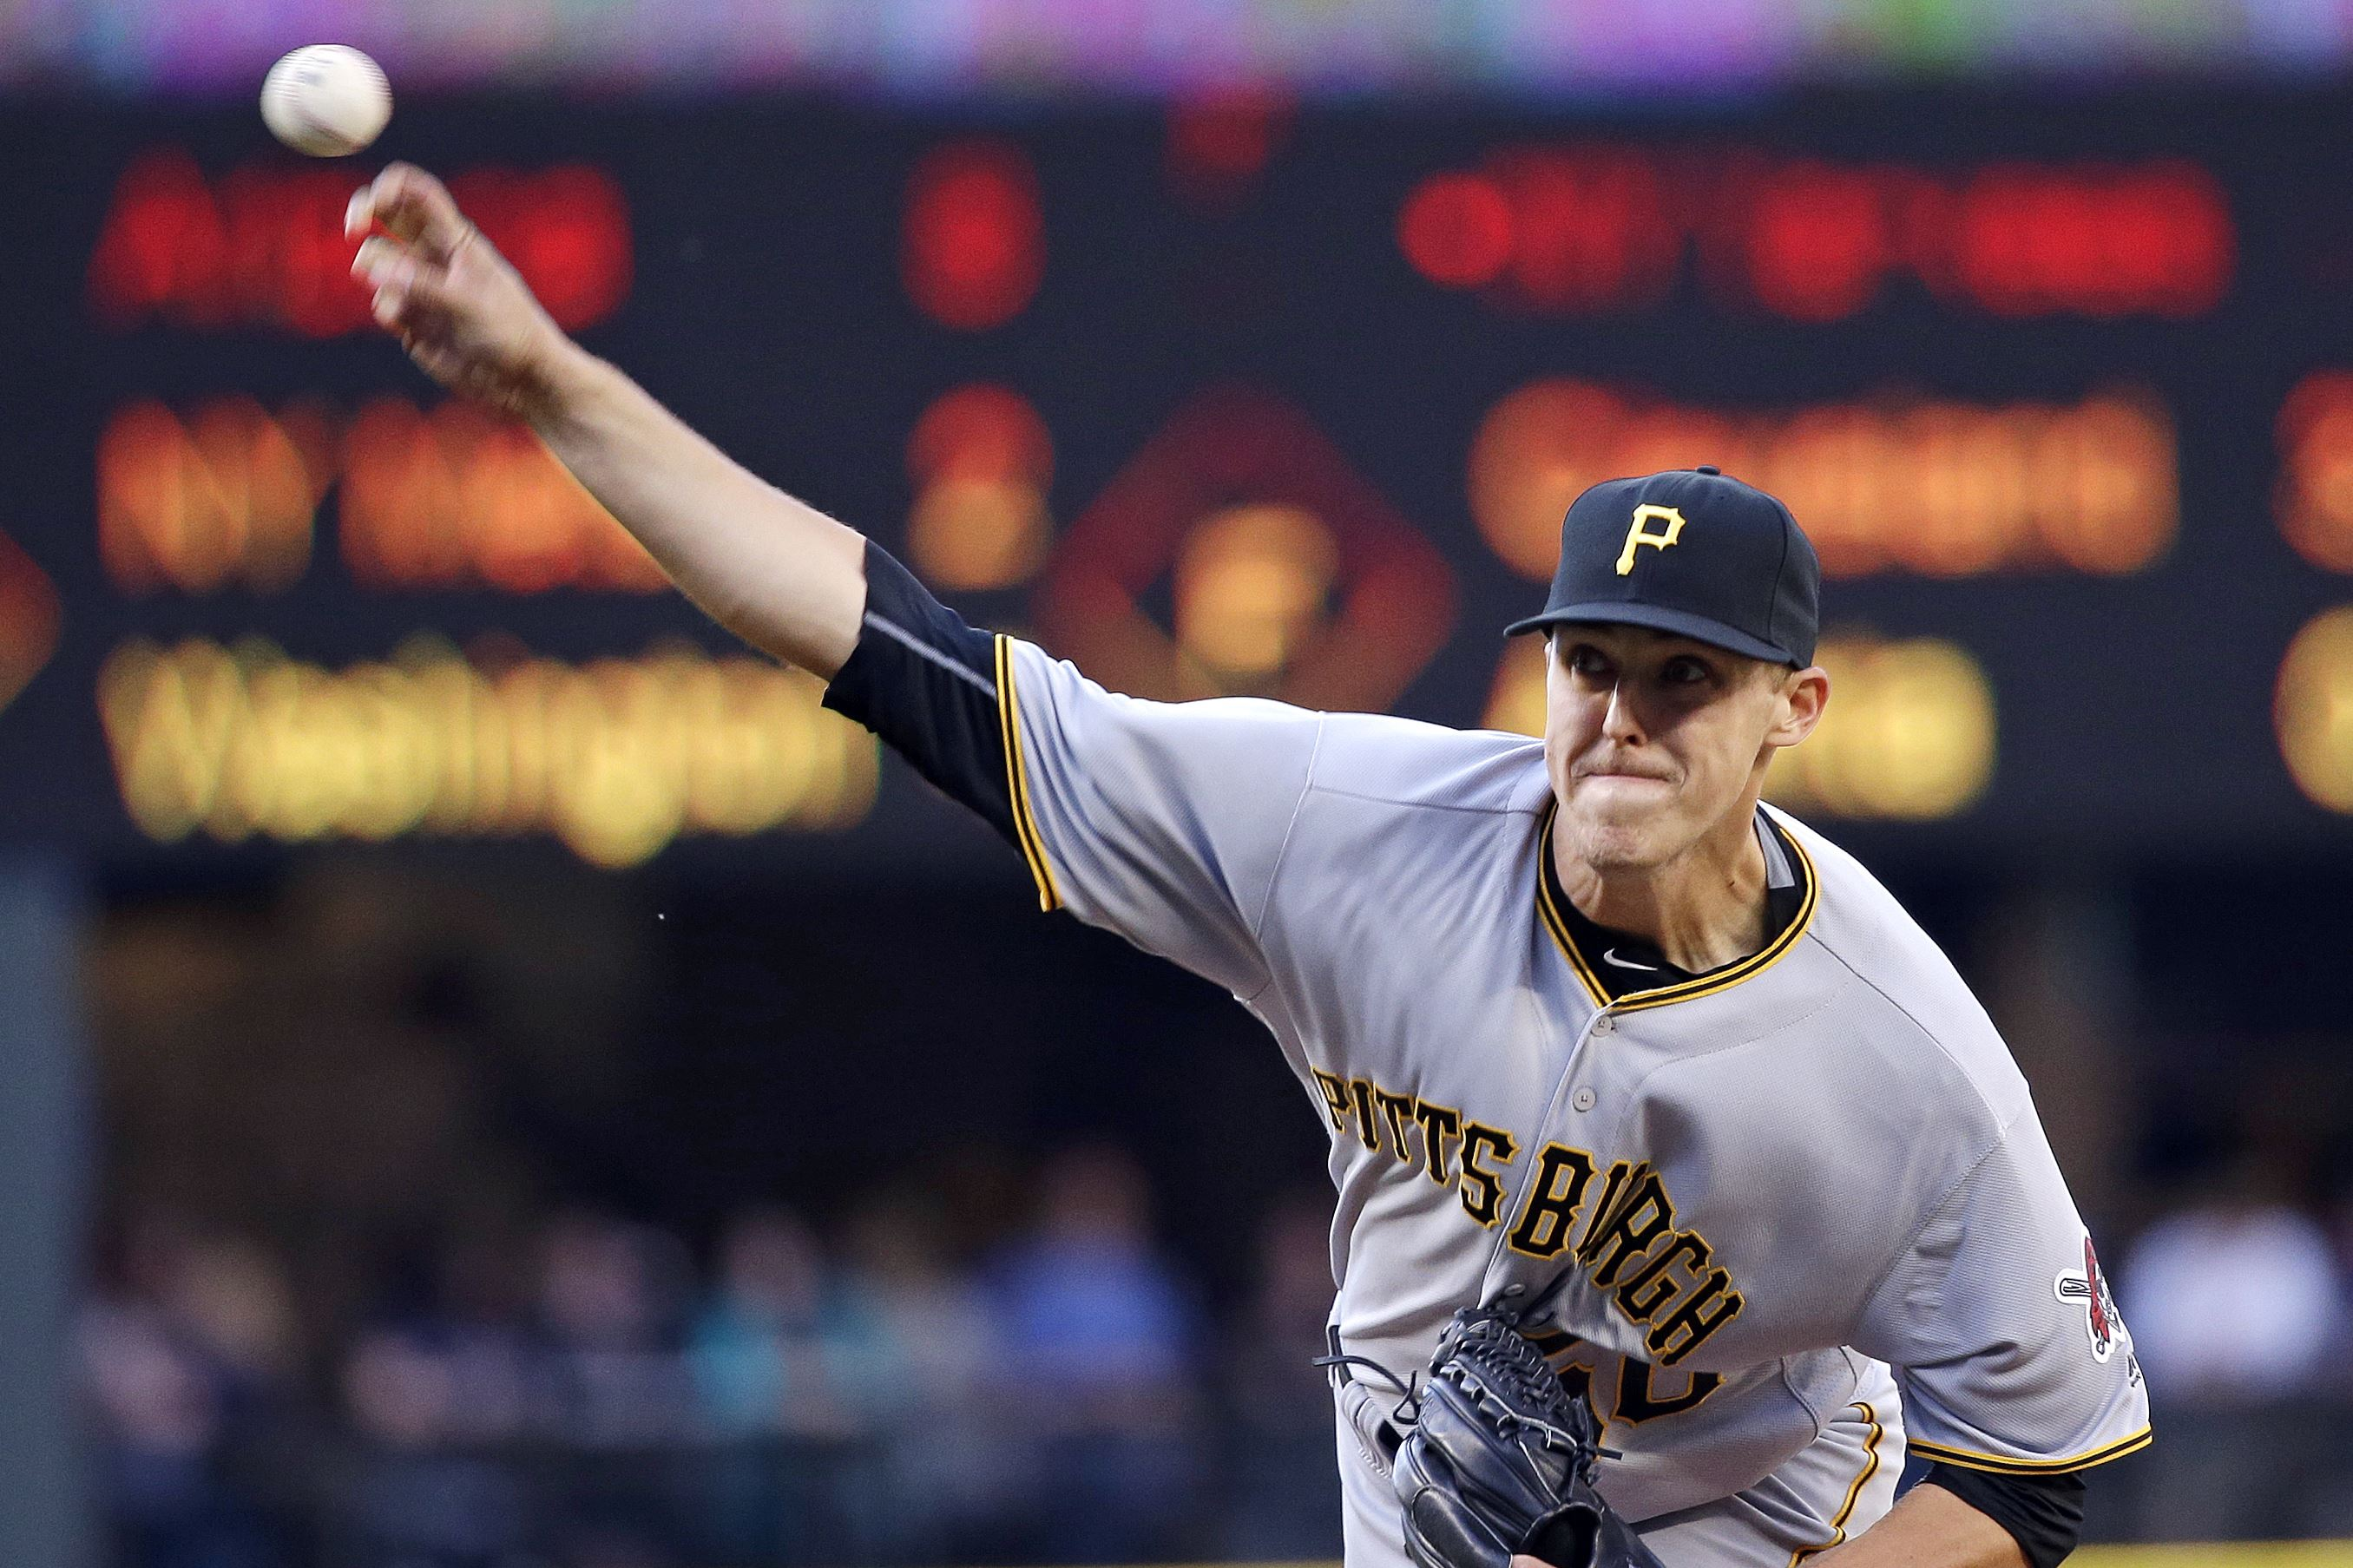 Pirates RHP Taillon hit in head by liner but stays in game